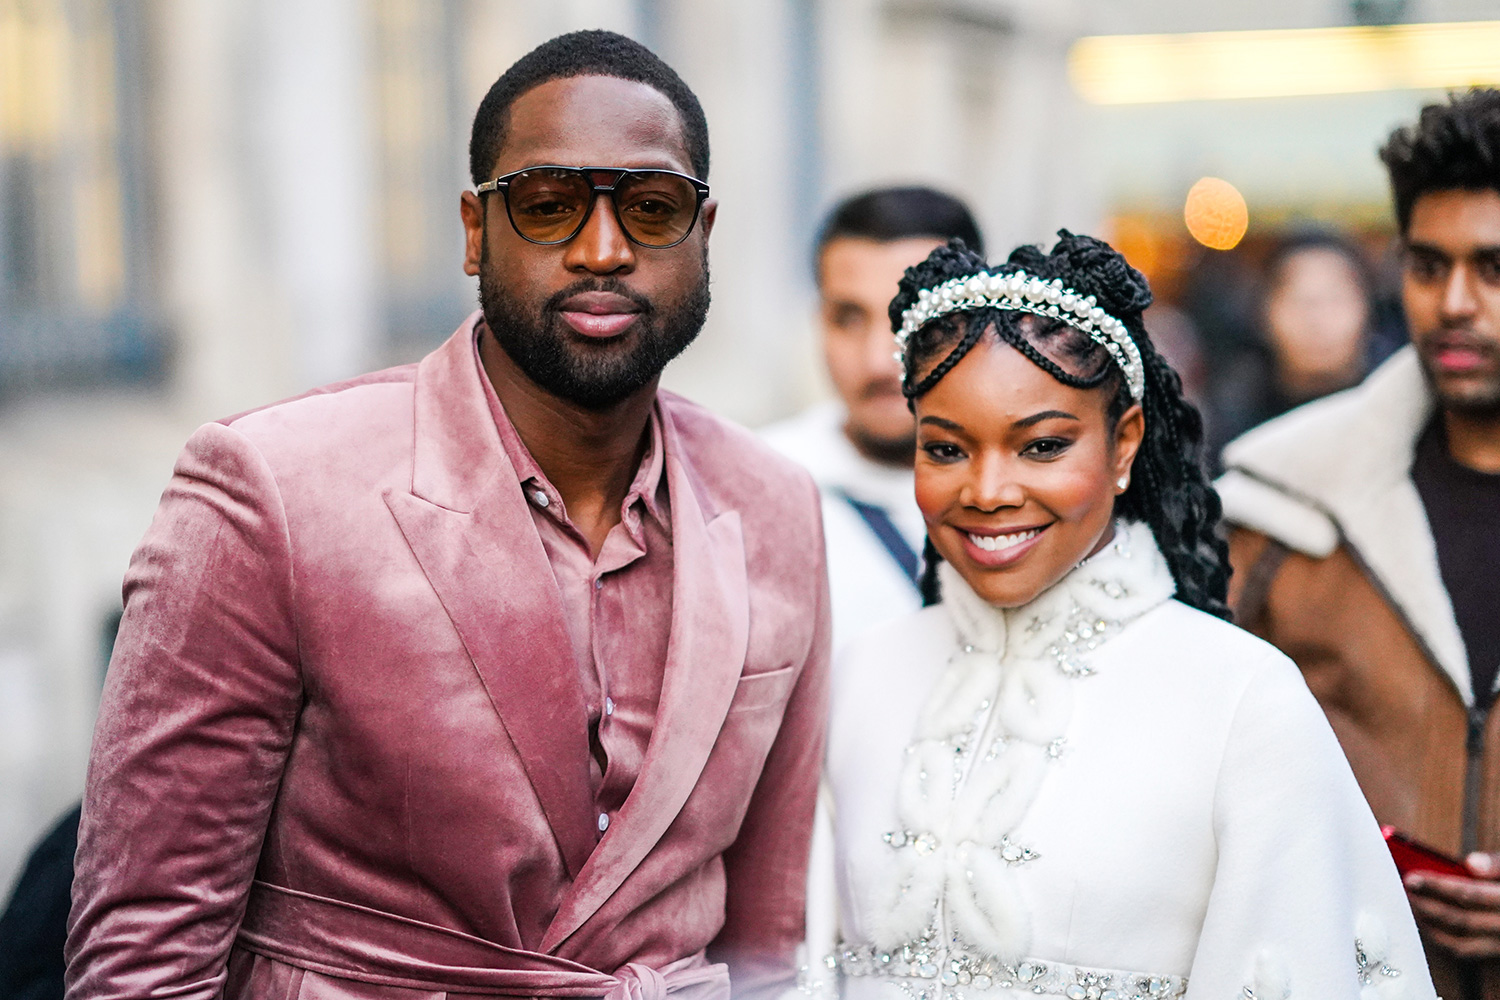 Dwayne Wade (L) wears sunglasses, a pink velvet shirt, a pink velvet jacket, a matched belt ; Gabrielle Union (R) wears a pearl headband, a white fluffy jacket with rhinestone embroideries, a mandarin collar and bell sleeves, outside Ralph & Russo, during Paris Fashion Week - Haute Couture Spring/Summer 2020, on January 20, 2020 in Paris, France